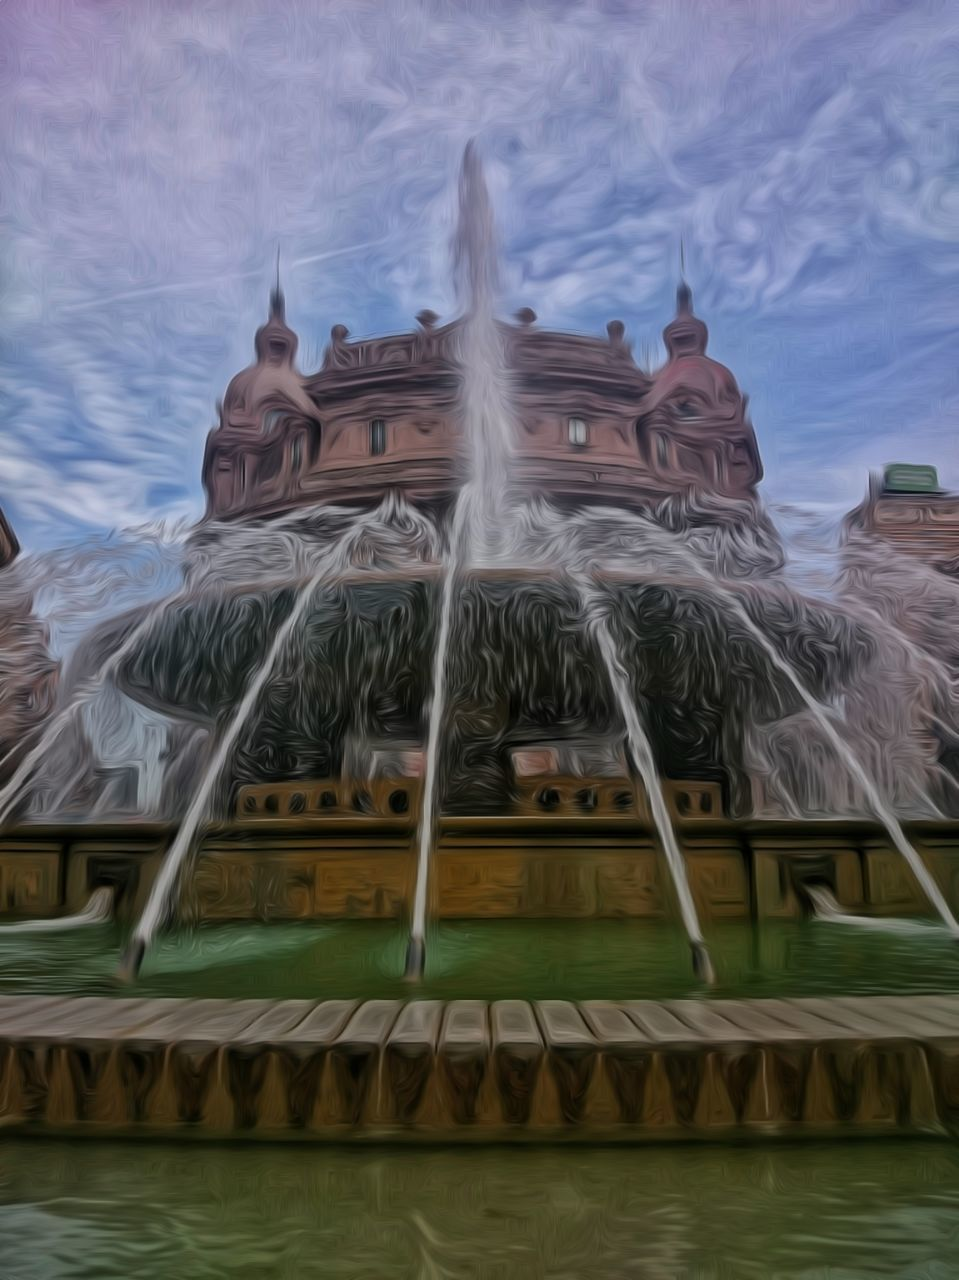 spirituality, religion, building exterior, built structure, low angle view, architecture, place of worship, statue, day, sculpture, water, cloud - sky, outdoors, sky, travel destinations, no people, carousel